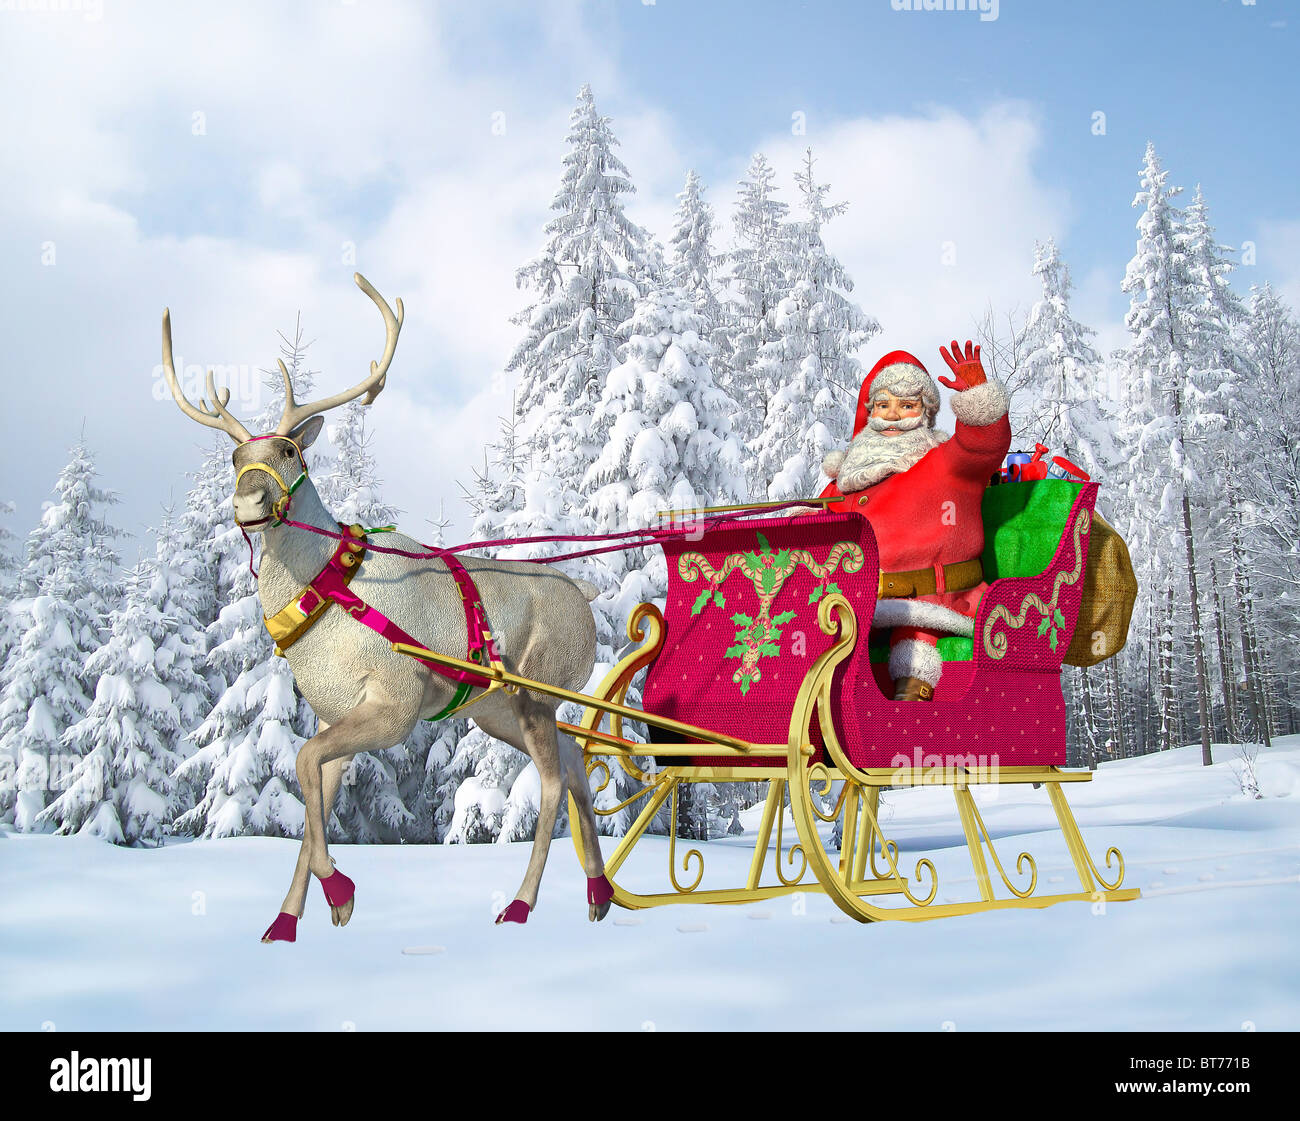 Santa Claus Driving A Sleigh With Reindeer On A Snowy